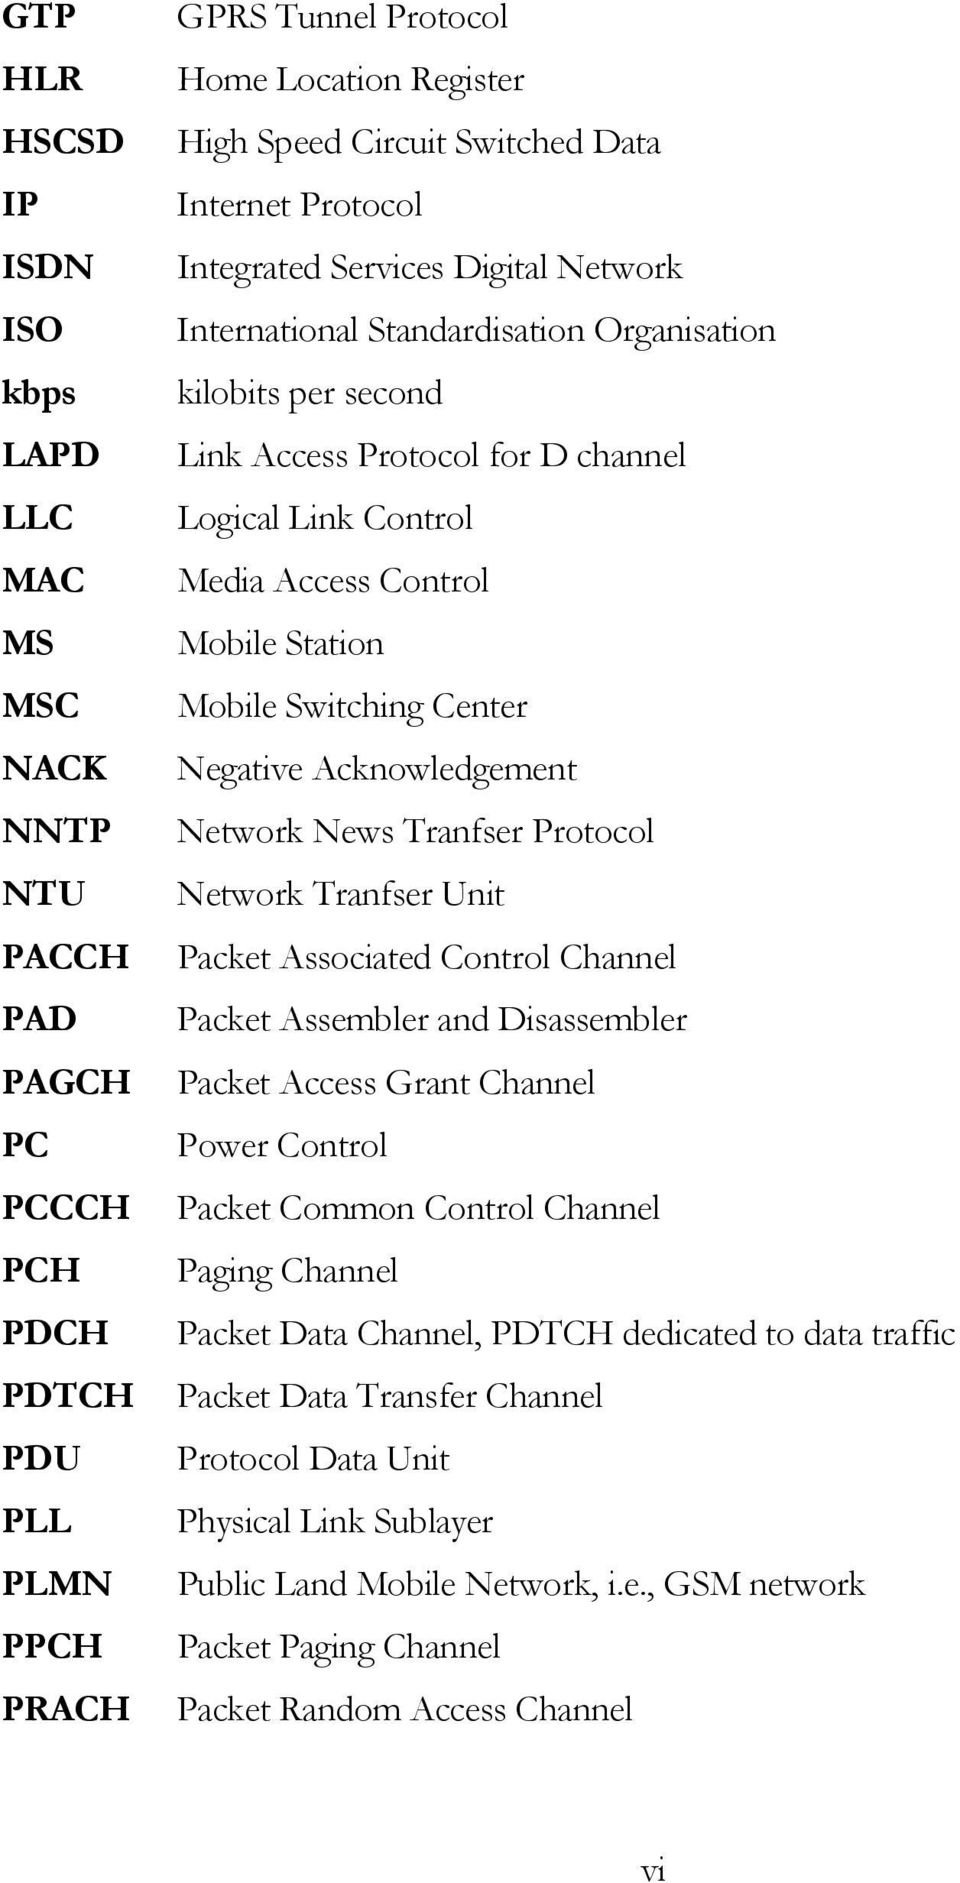 Control Mobile Station Mobile Switching Center Negative Acknowledgement Network News Tranfser Protocol Network Tranfser Unit Packet Associated Control Channel Packet Assembler and Disassembler Packet